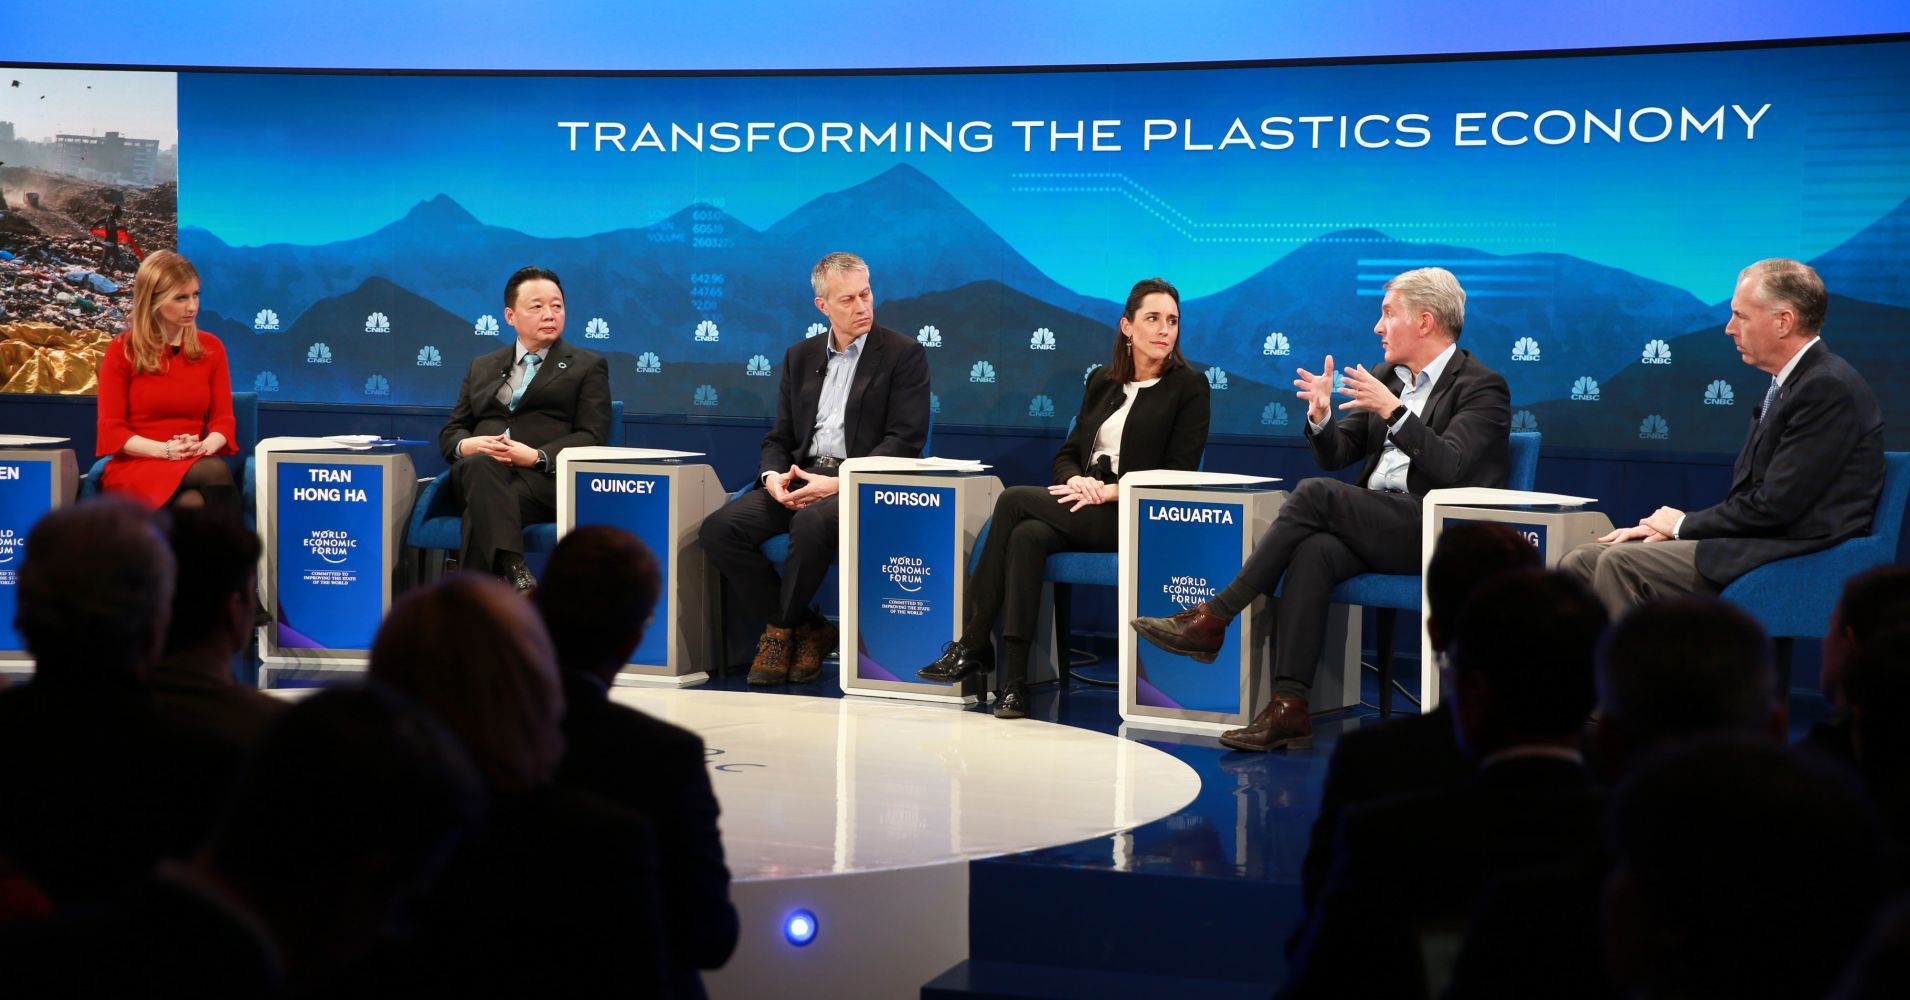 Coca-cola And Pepsi Agree Plastic Waste Is A Problem, But The Solution Is More Complicated photo